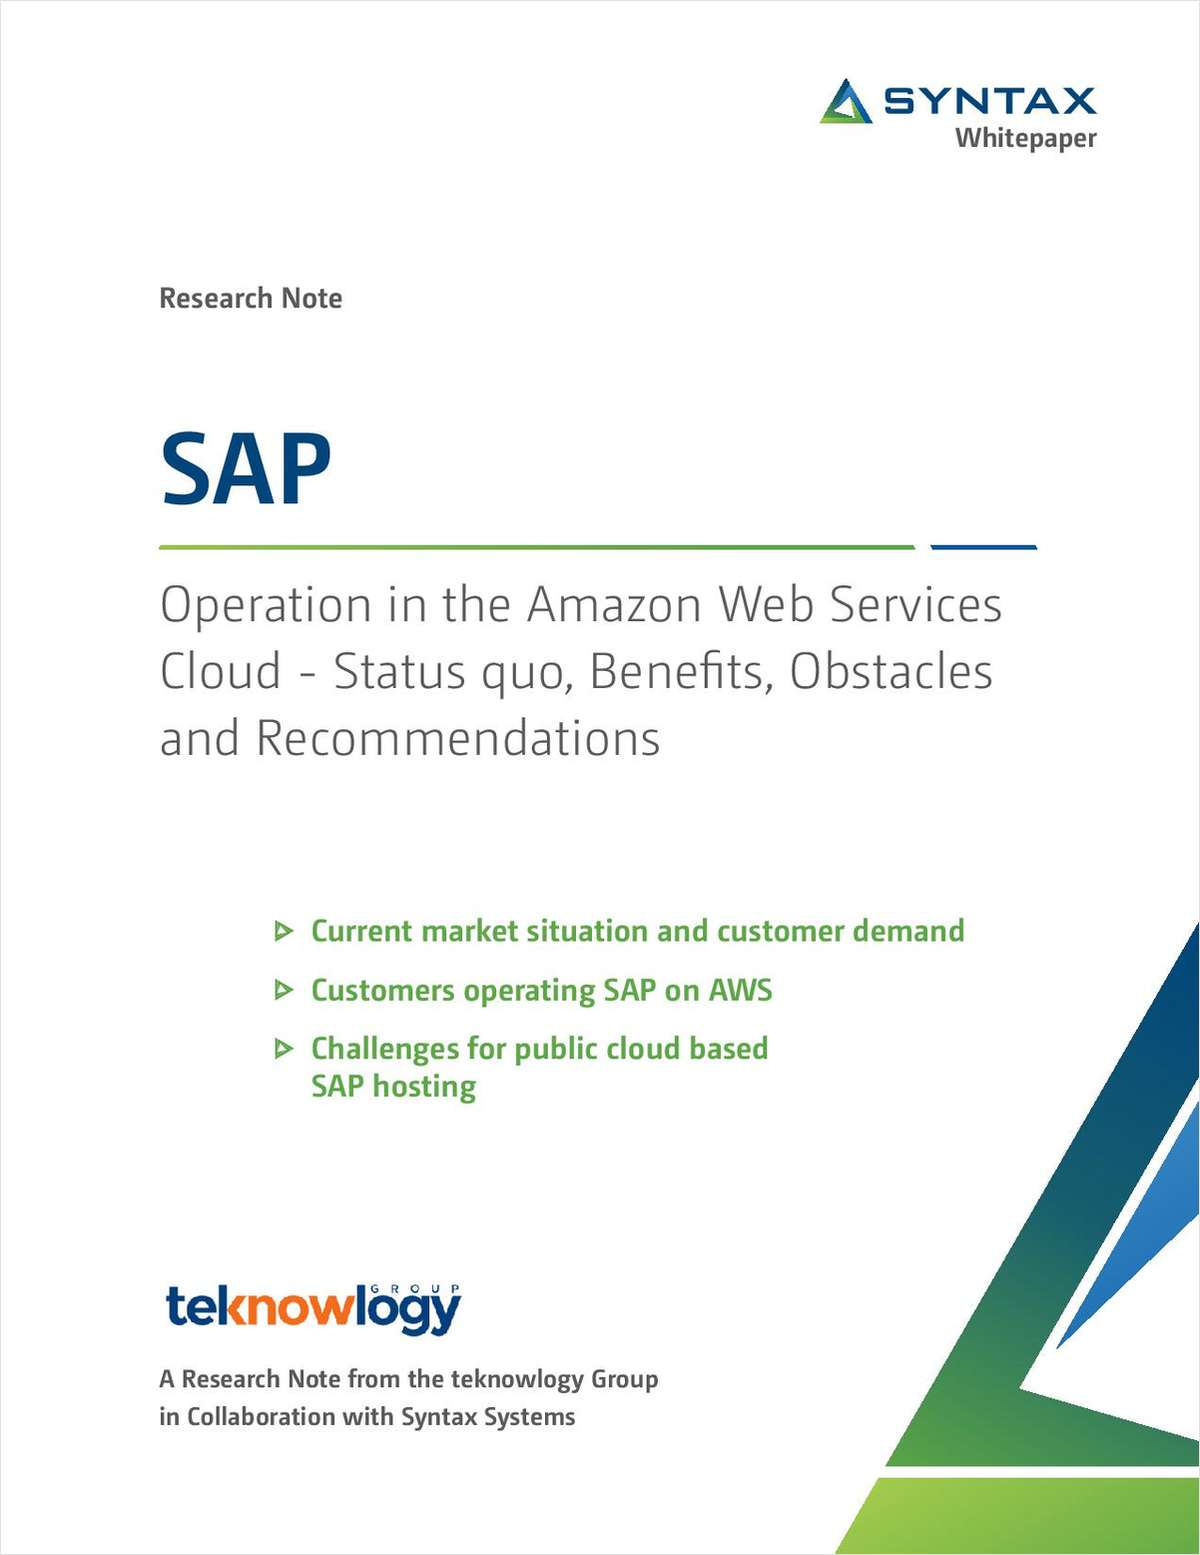 Operation in the Amazon Web Services Cloud - Status Quo, Benefits, Obstacles and Recommendations